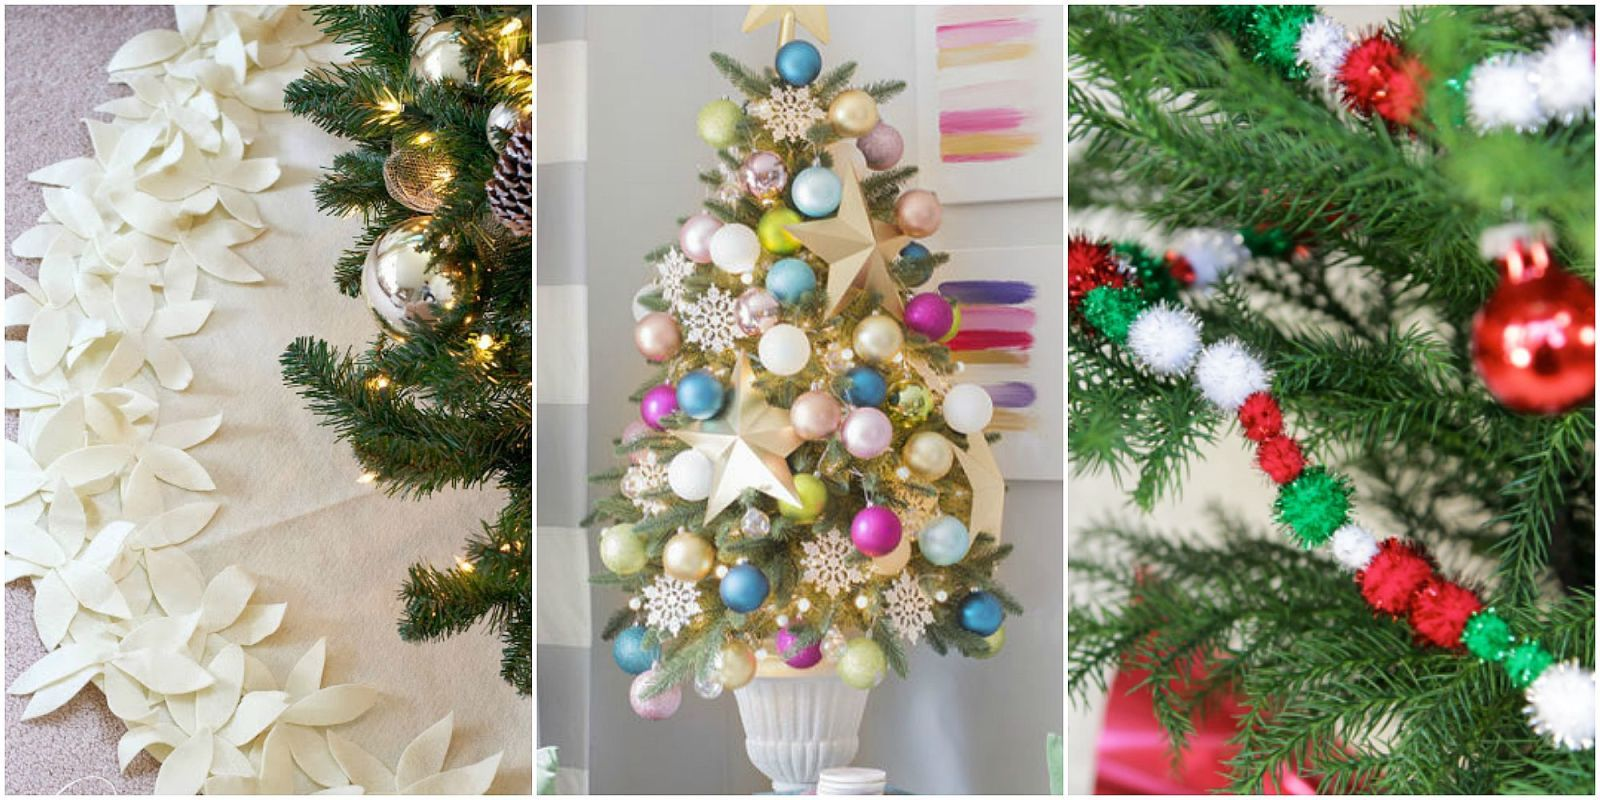 Christmas Tree Decorations Habitat : Unique christmas tree decorations ideas for